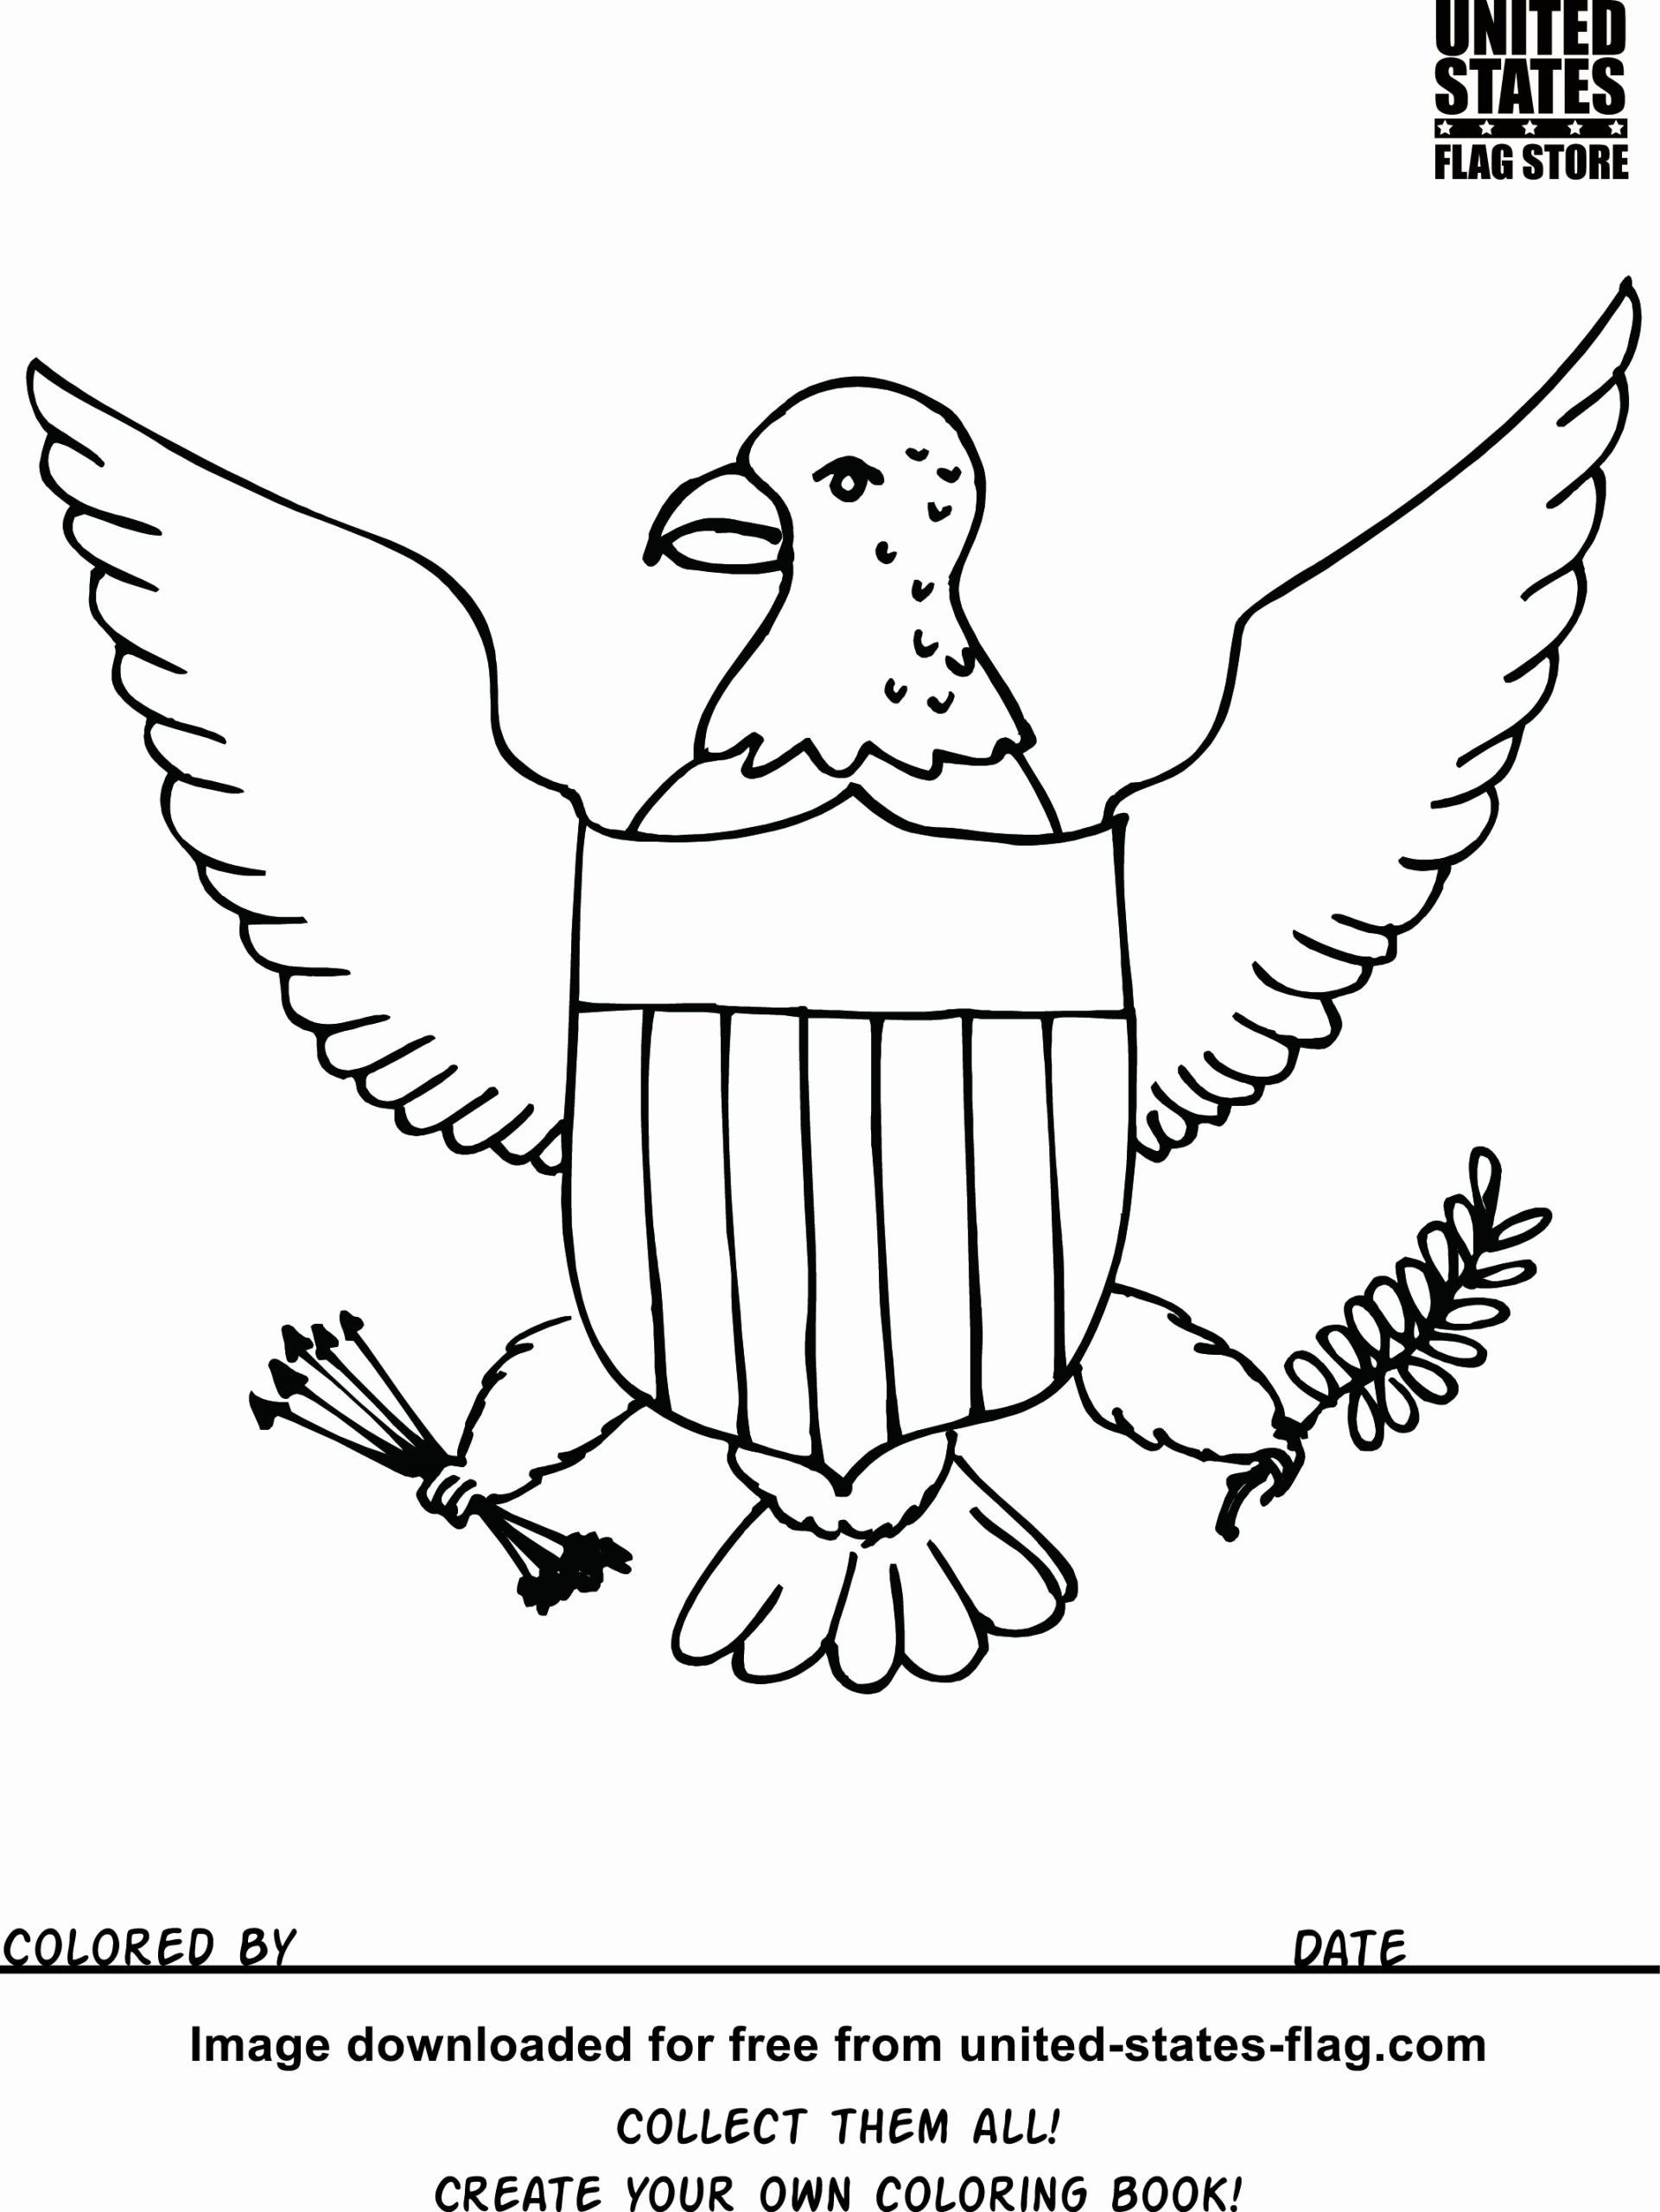 United States Flag Coloring Sheets In